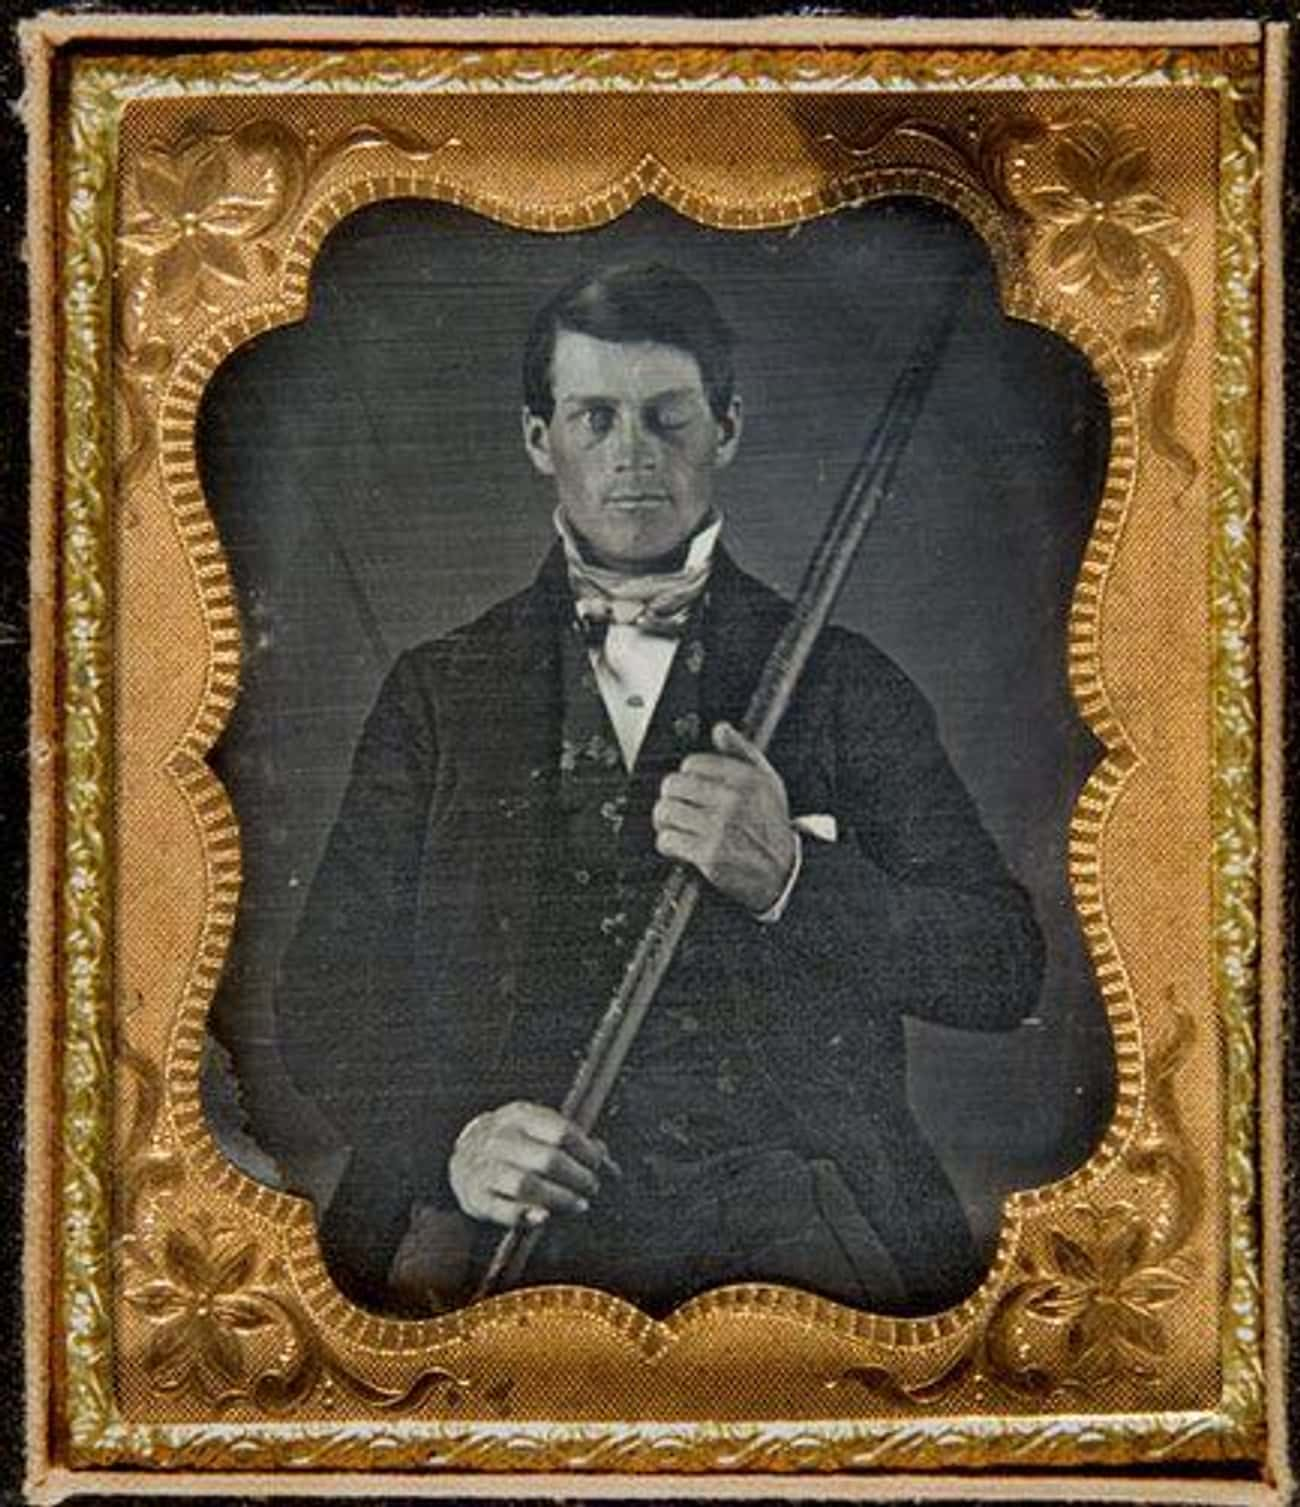 Phineas Gage Survived A Tampin is listed (or ranked) 4 on the list 15 Bizarre Psychological Cases From History That Left Scientists Speechless